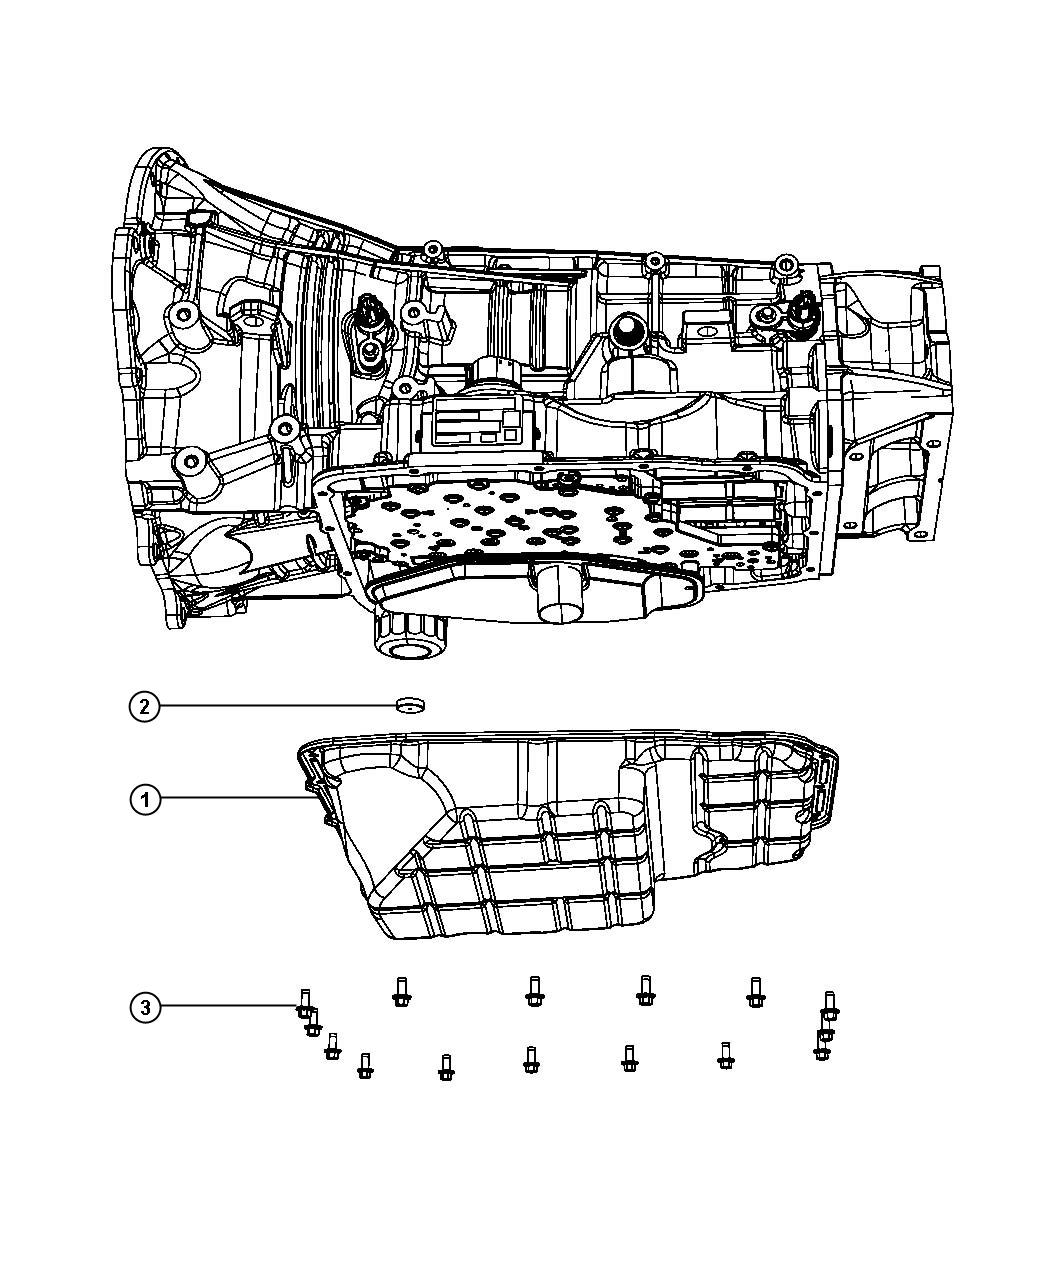 Pontiac Montana Repair Manual